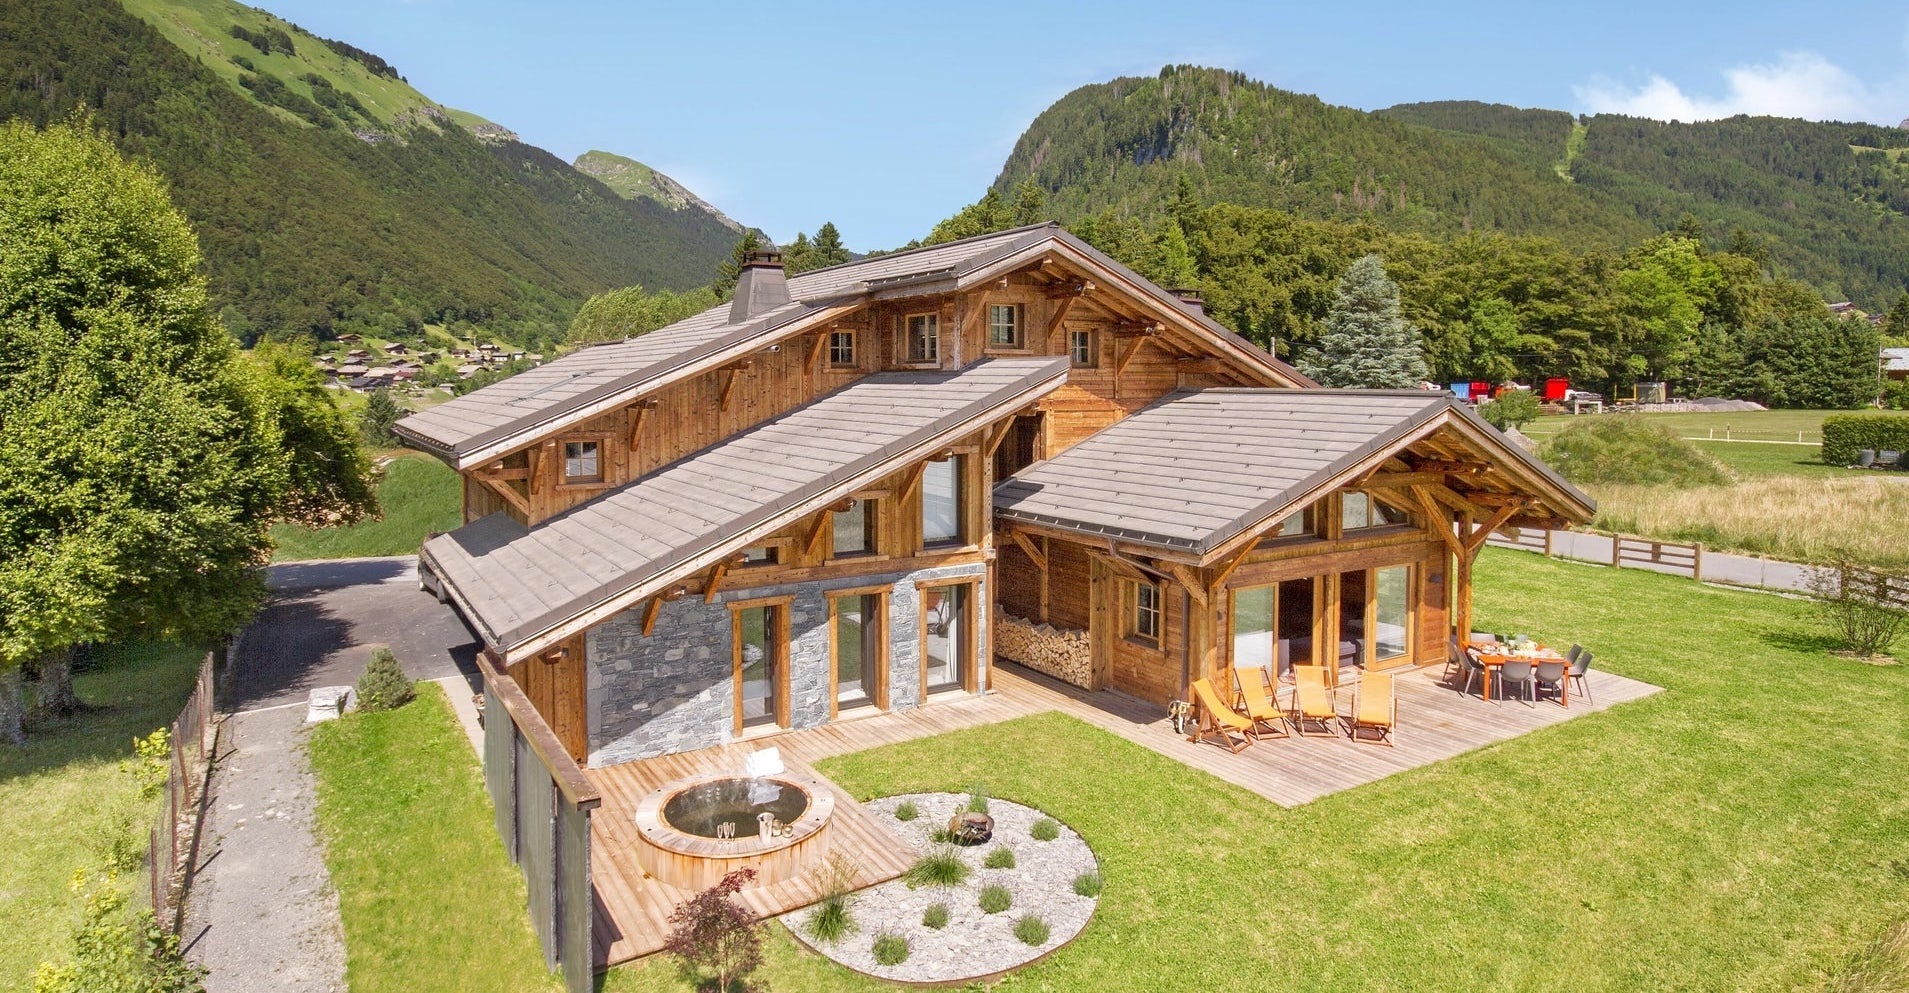 Morzine chalet with a hot tub and dining table in a sunny garden